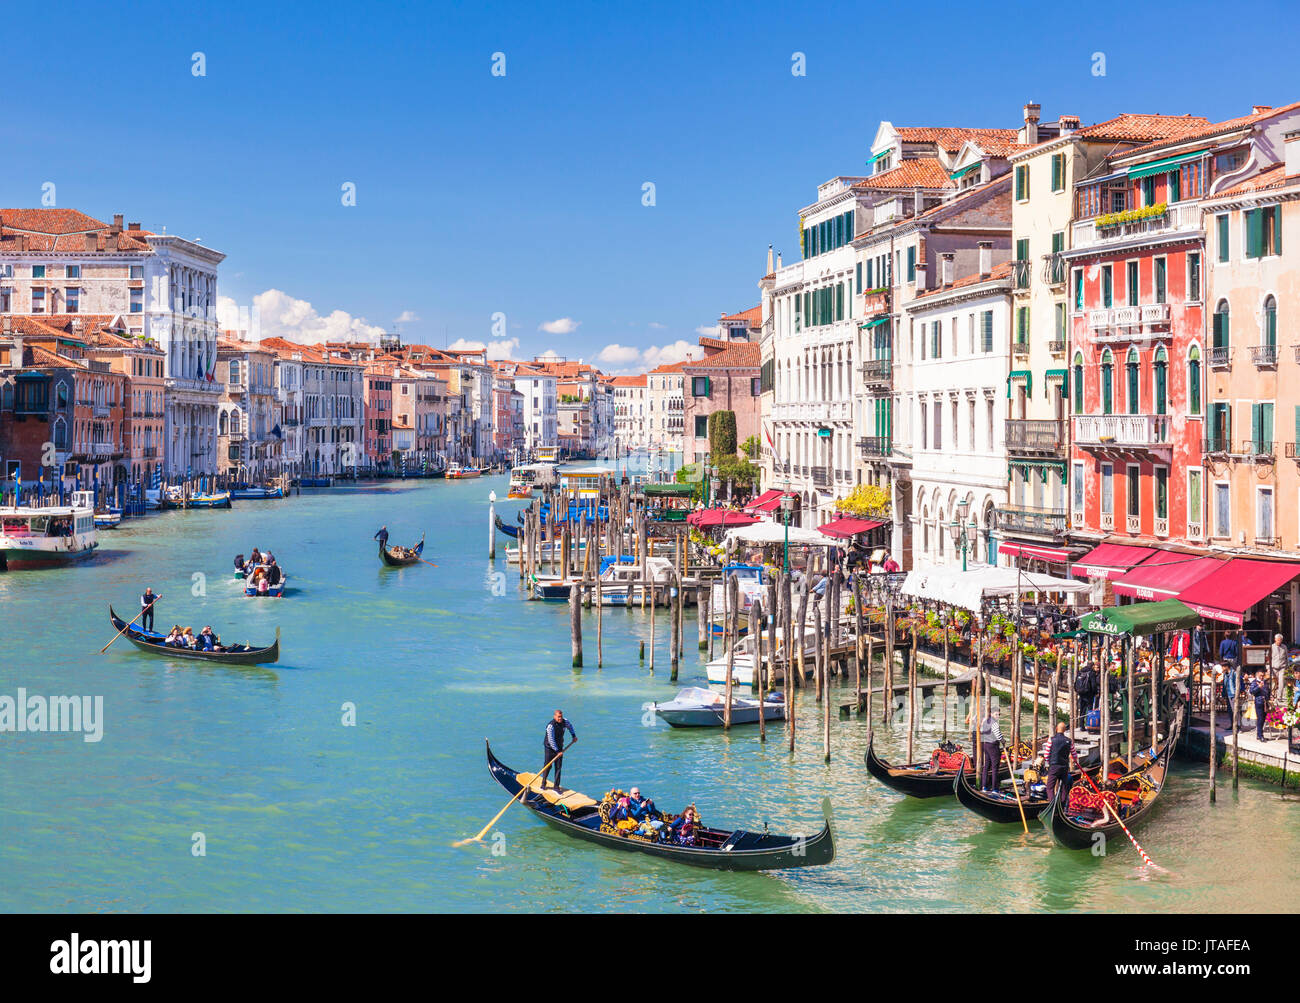 Gondolas, with tourists, on the Grand Canal, next to the Fondementa del Vin, Venice, UNESCO, Veneto, Italy, Europe - Stock Image